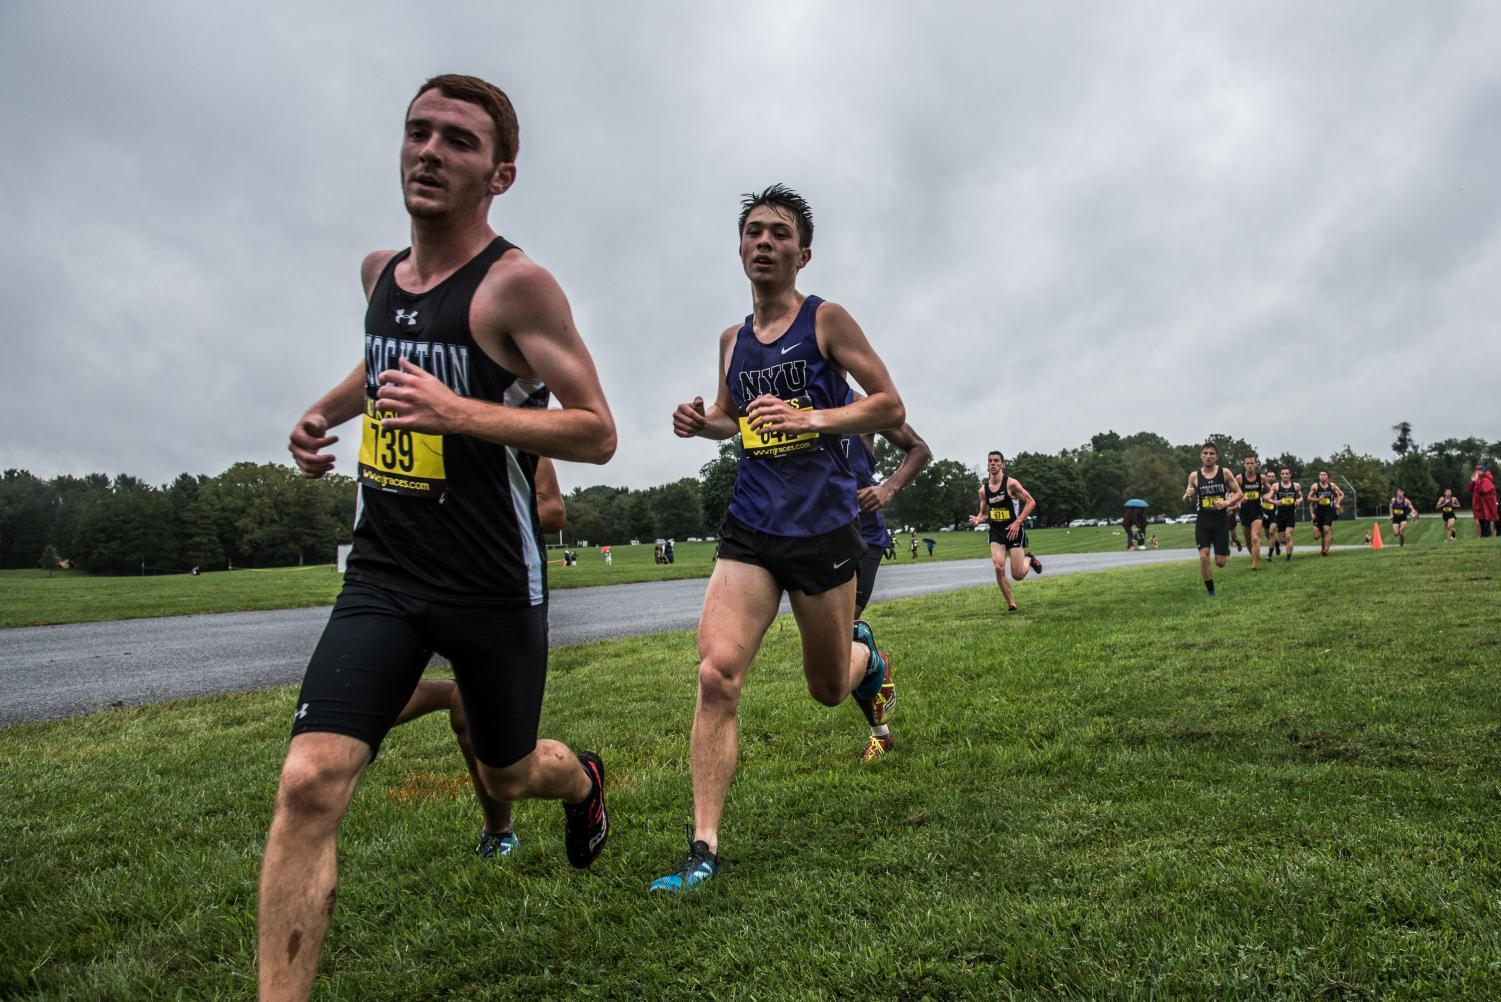 Steinhardt junior Yuji Cusick (center) runs a cross-country race at the Ramapo College Season Opener on Friday, Aug. 31.